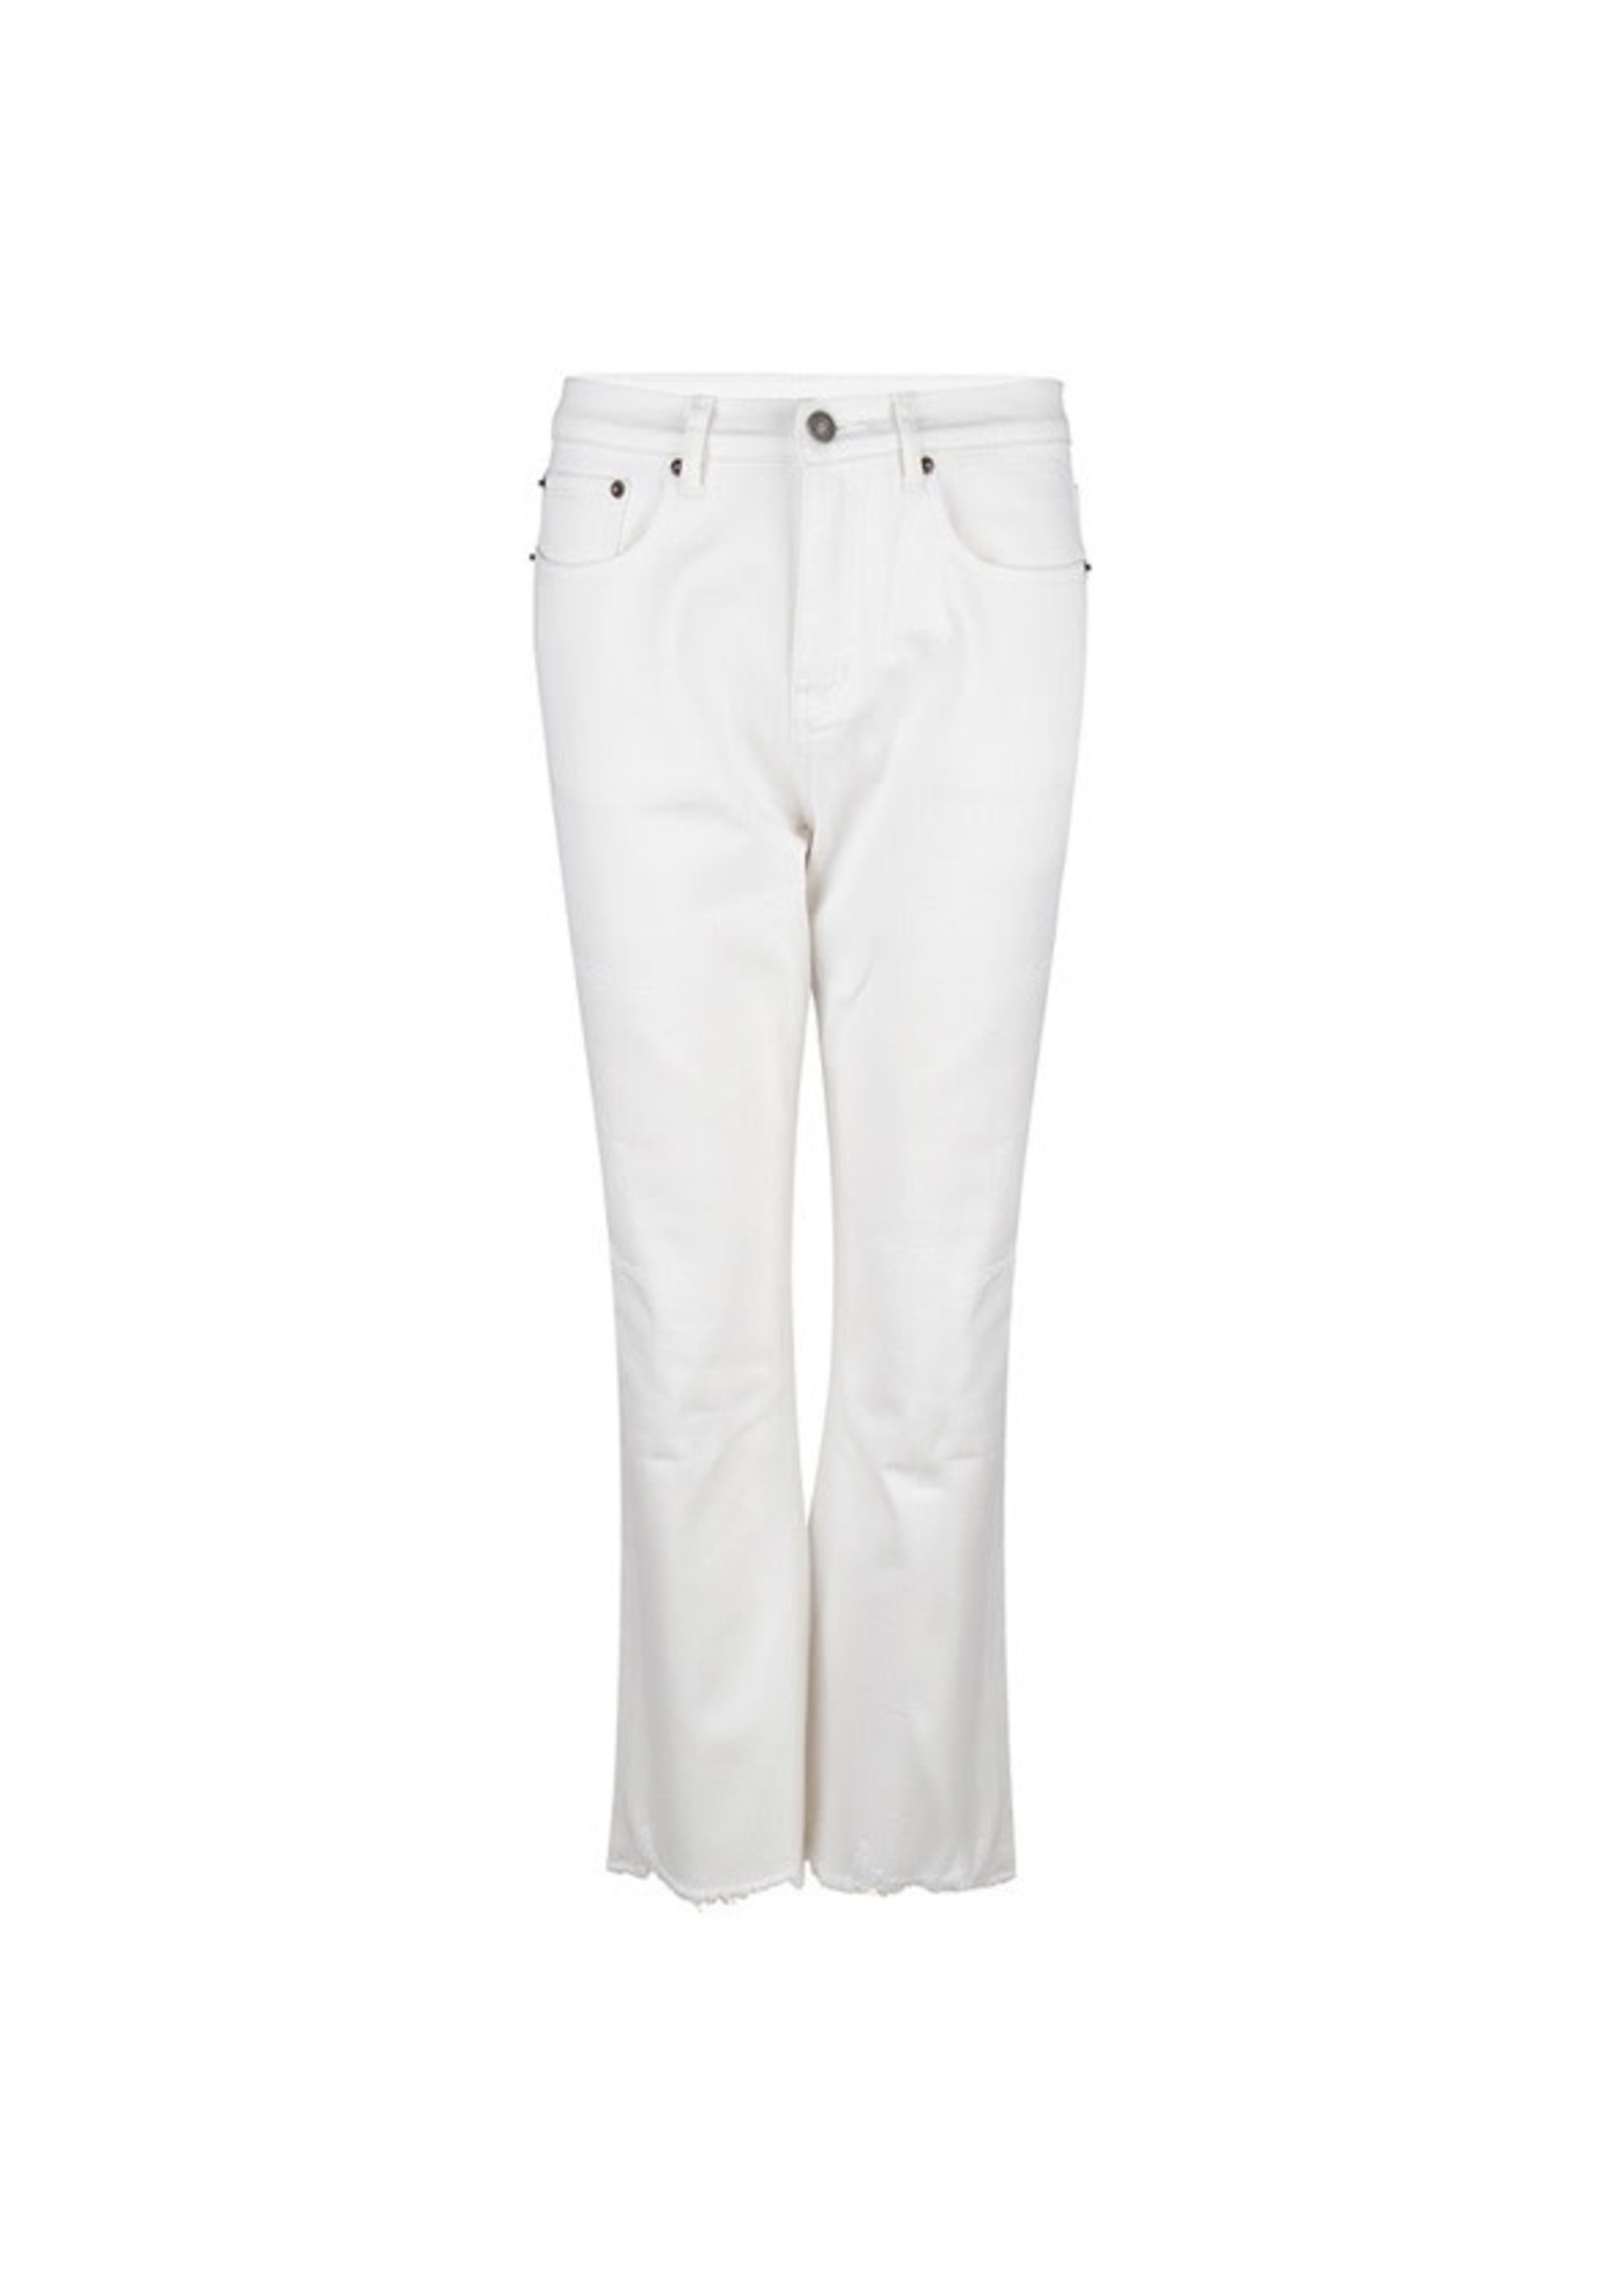 F21.12503 Trousers jeans bootcut